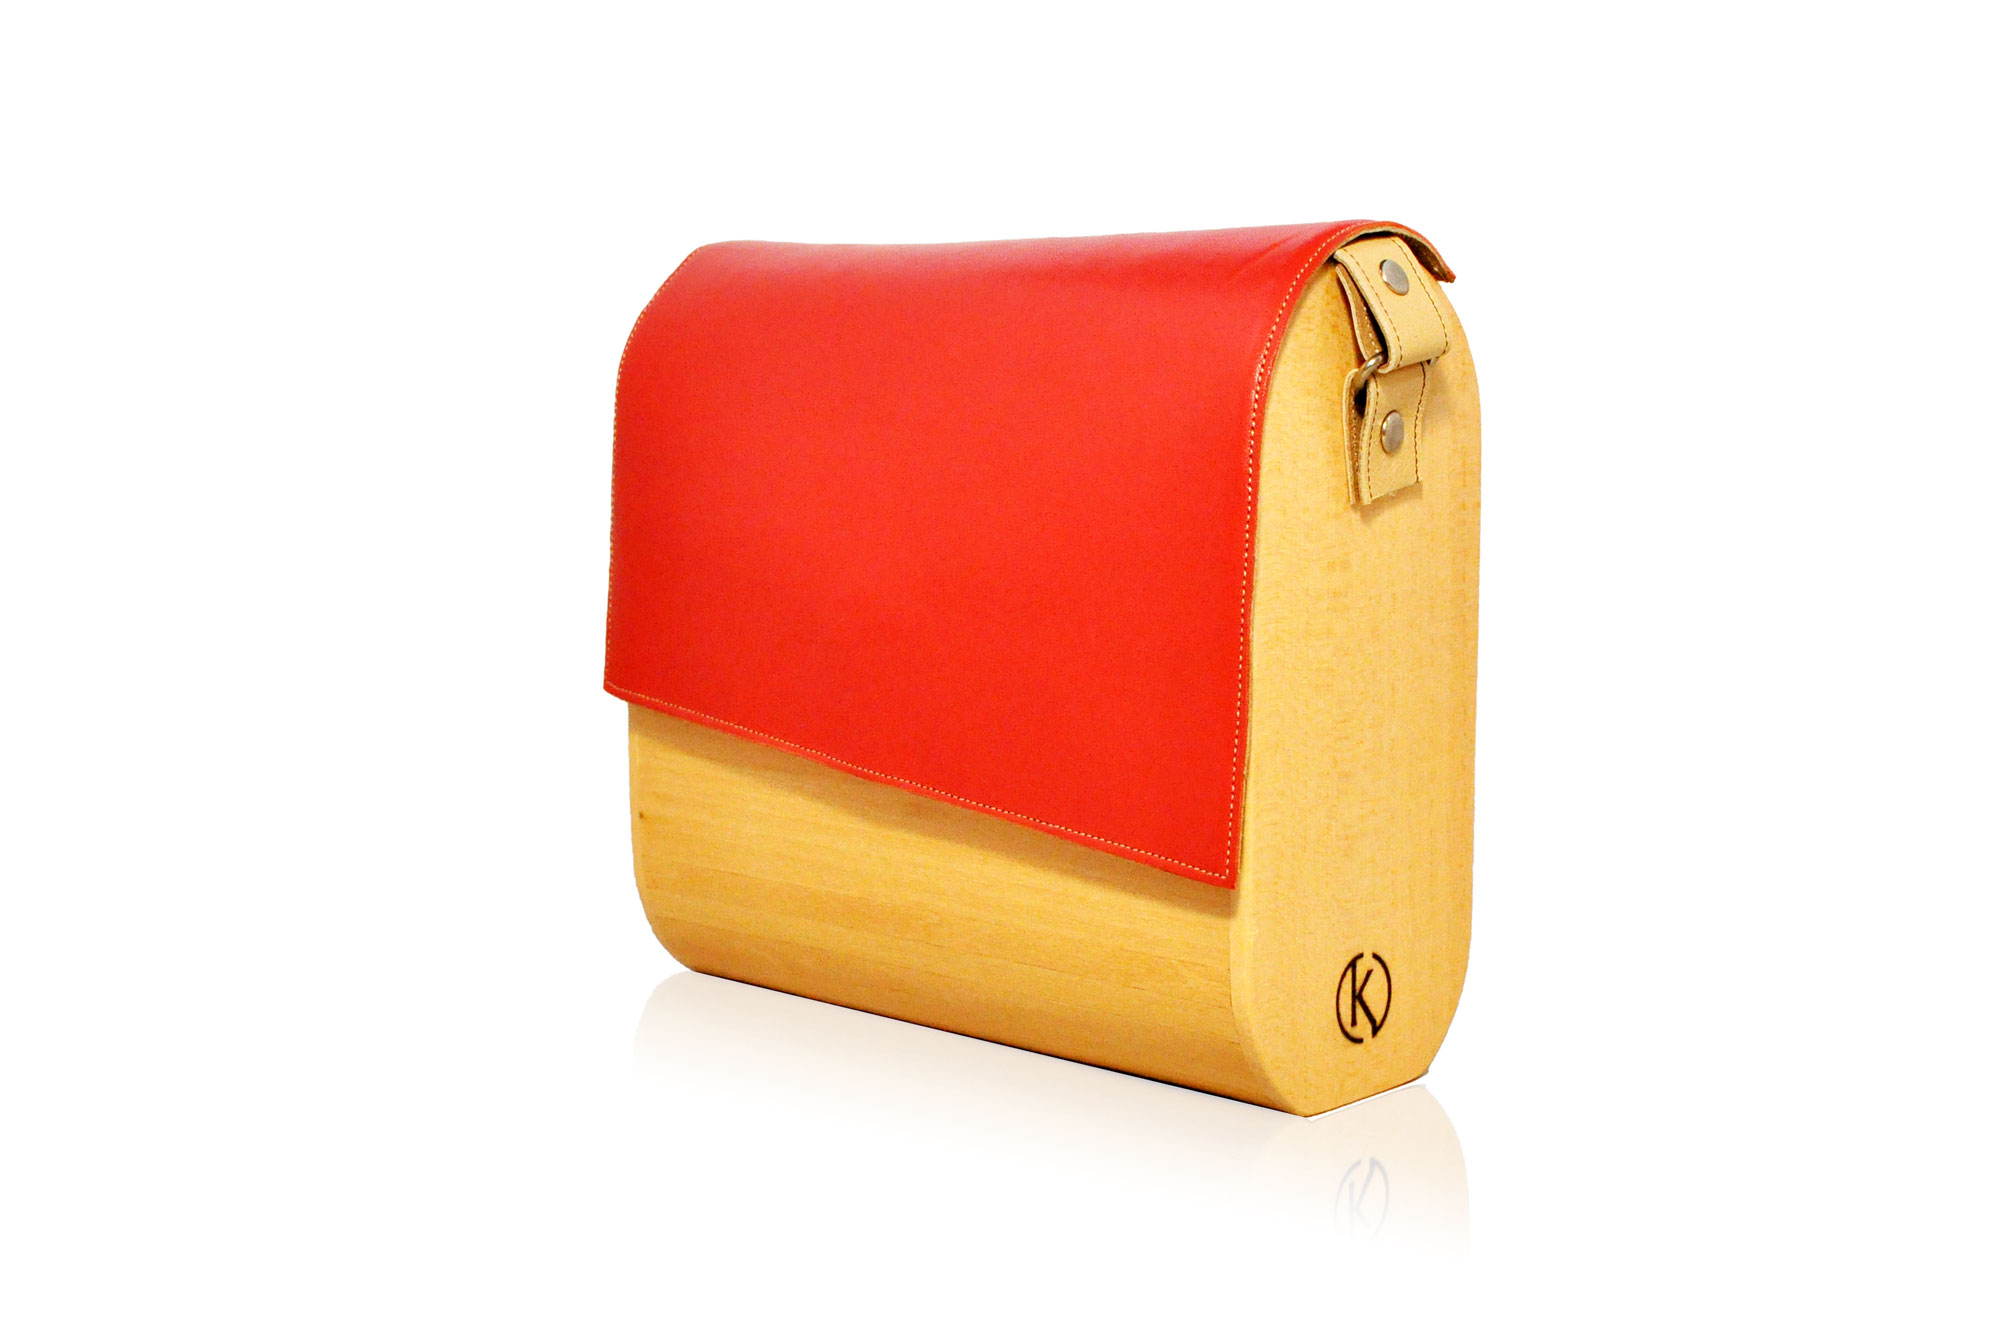 Linden & Dark Coral – TK Wooden Exclusive Luxury Bags